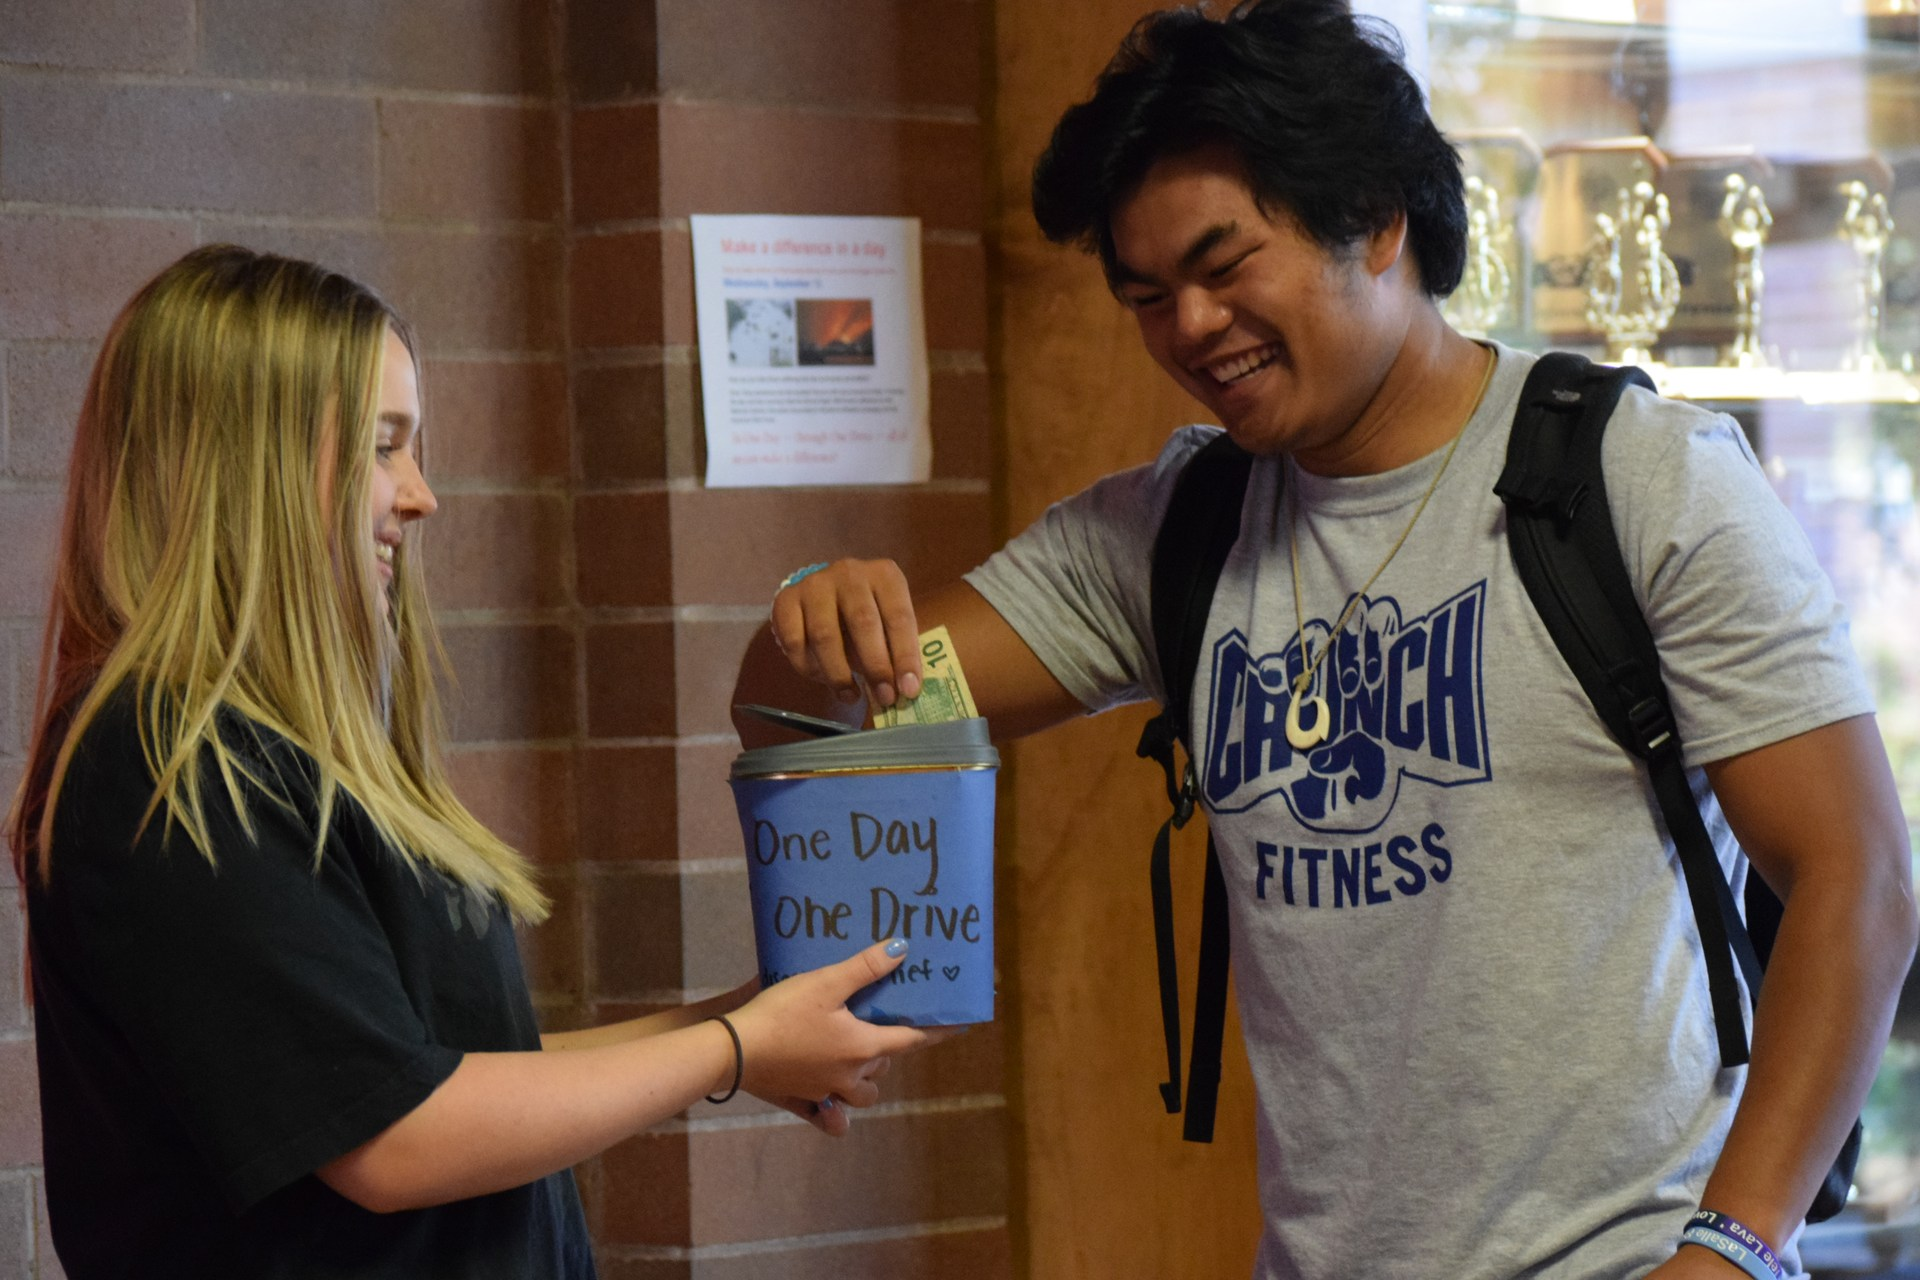 Student putting donation in bucket.